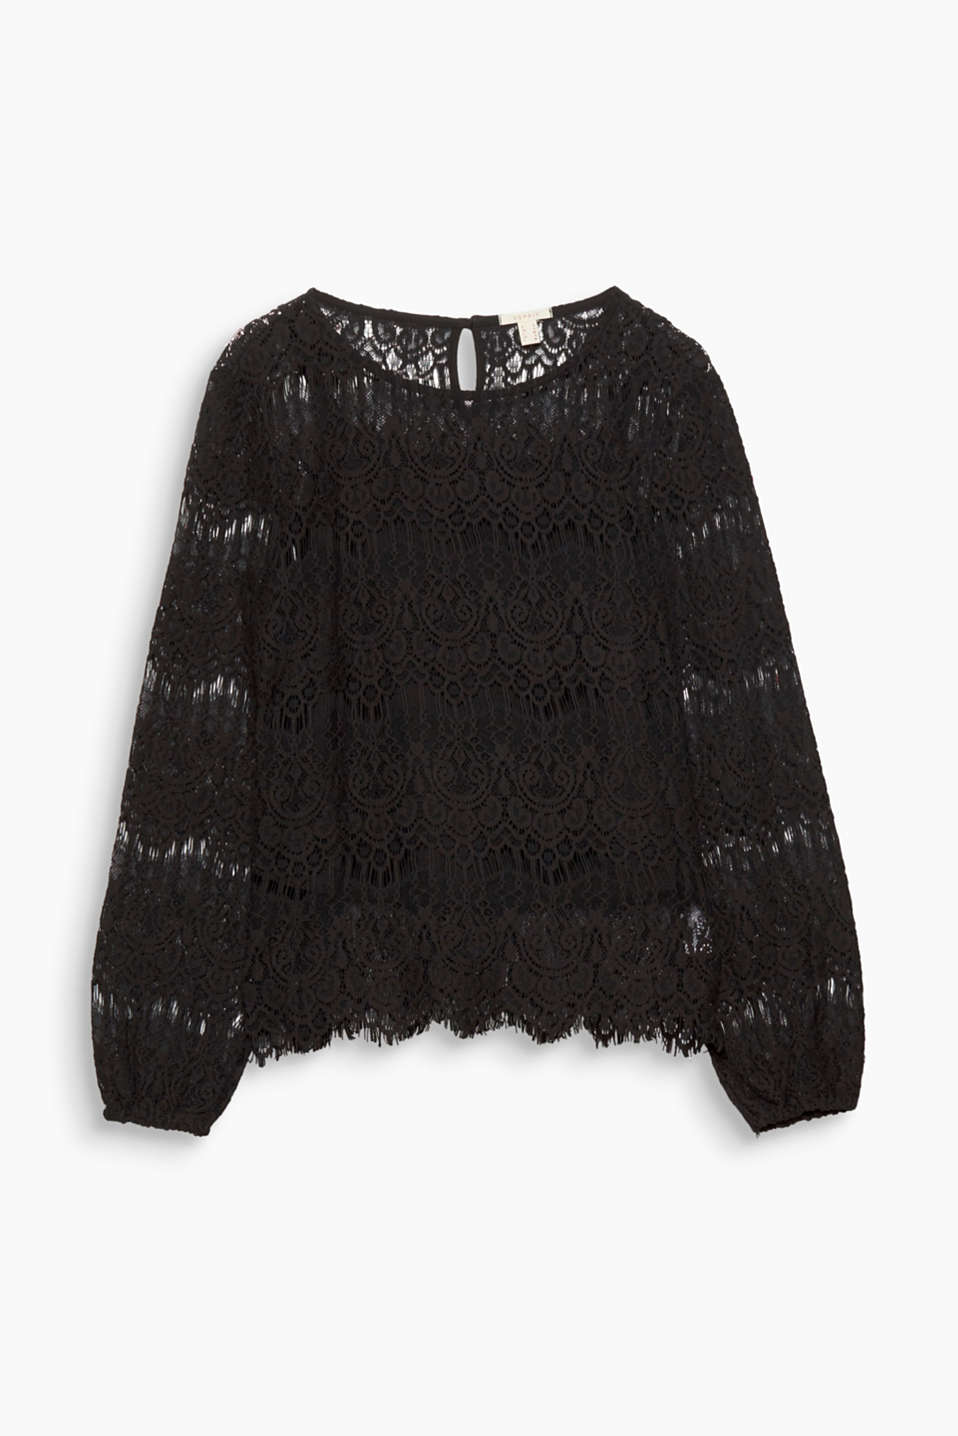 Made from ornamental lace with an integrated top, this long sleeve top is stylish and extremely comfortable!